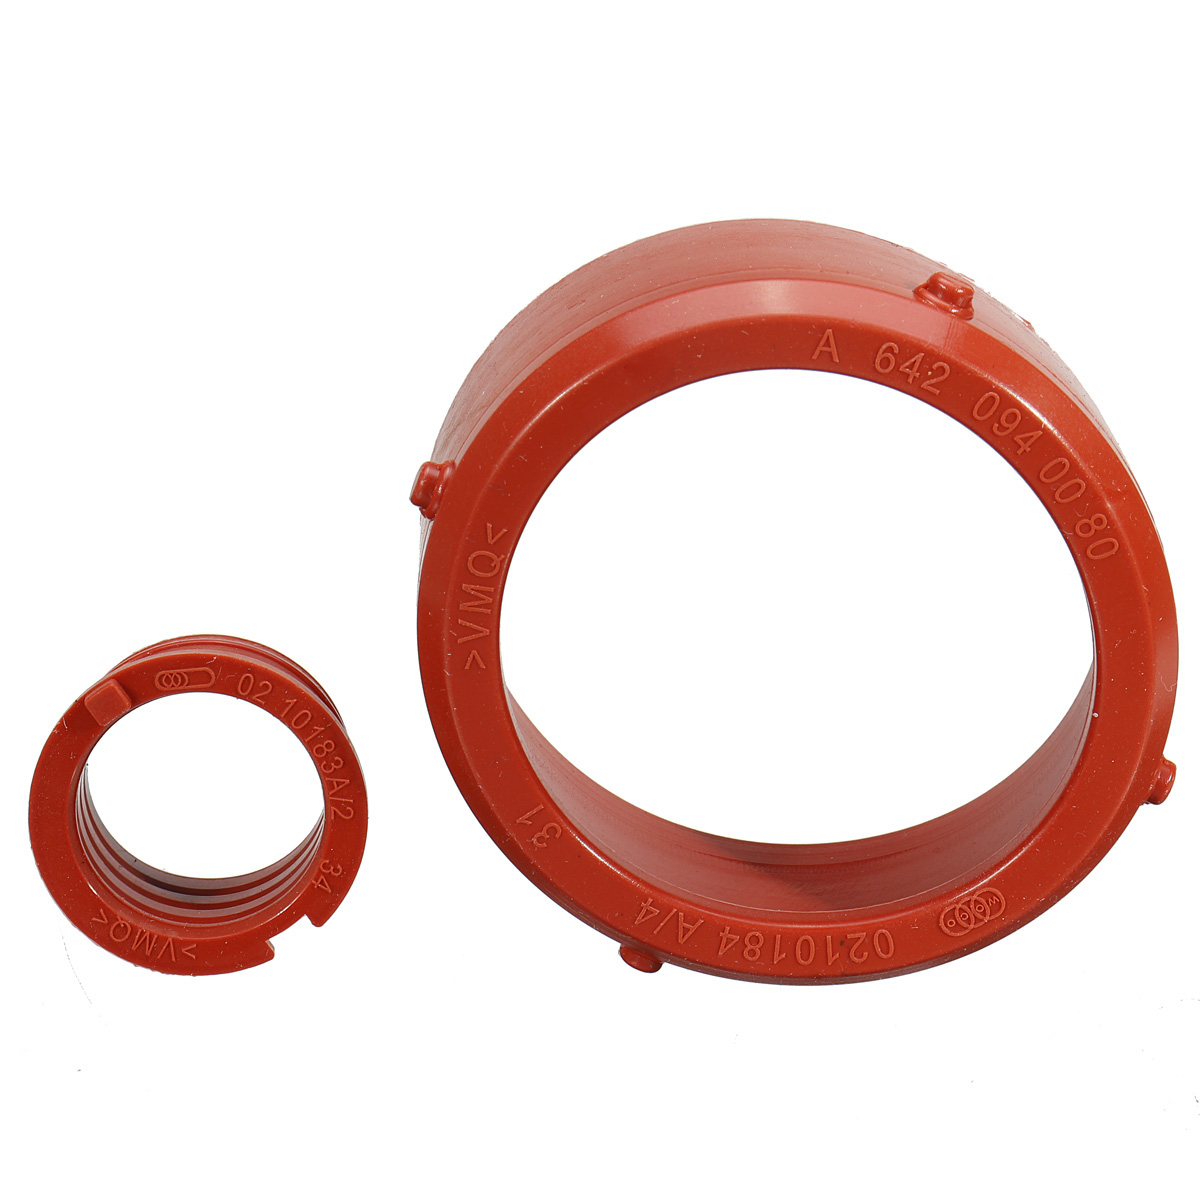 lowest price 2pcs  Car engine A6420940080 Turbo Intake Seal  amp  Engine Breather Seal Kit for Mercedes-Benz OM642 Engines Engine Accessories